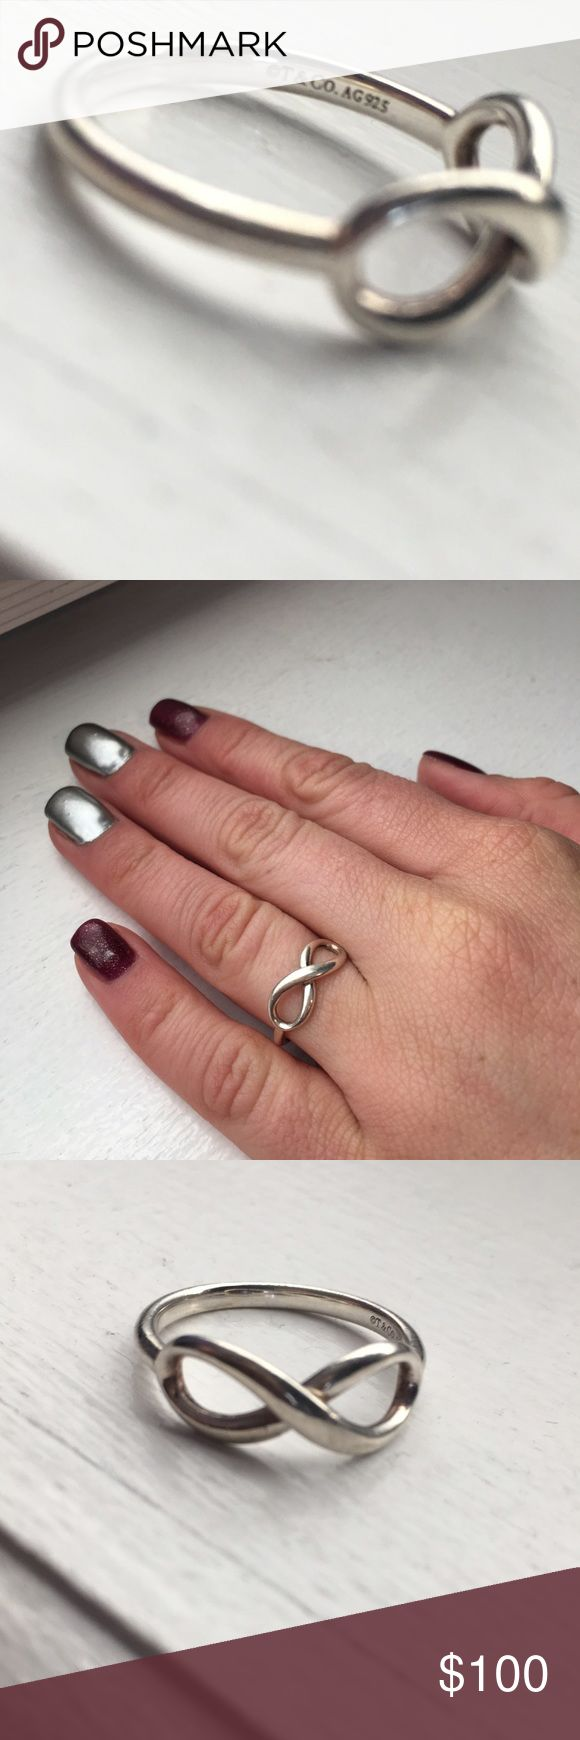 Tiffany & Co. Sterling Silver Infinity Ring Beautiful size 7 Tiffany Infinity Ring. No visible signs of wear. Tiffany & Co. Jewelry Rings